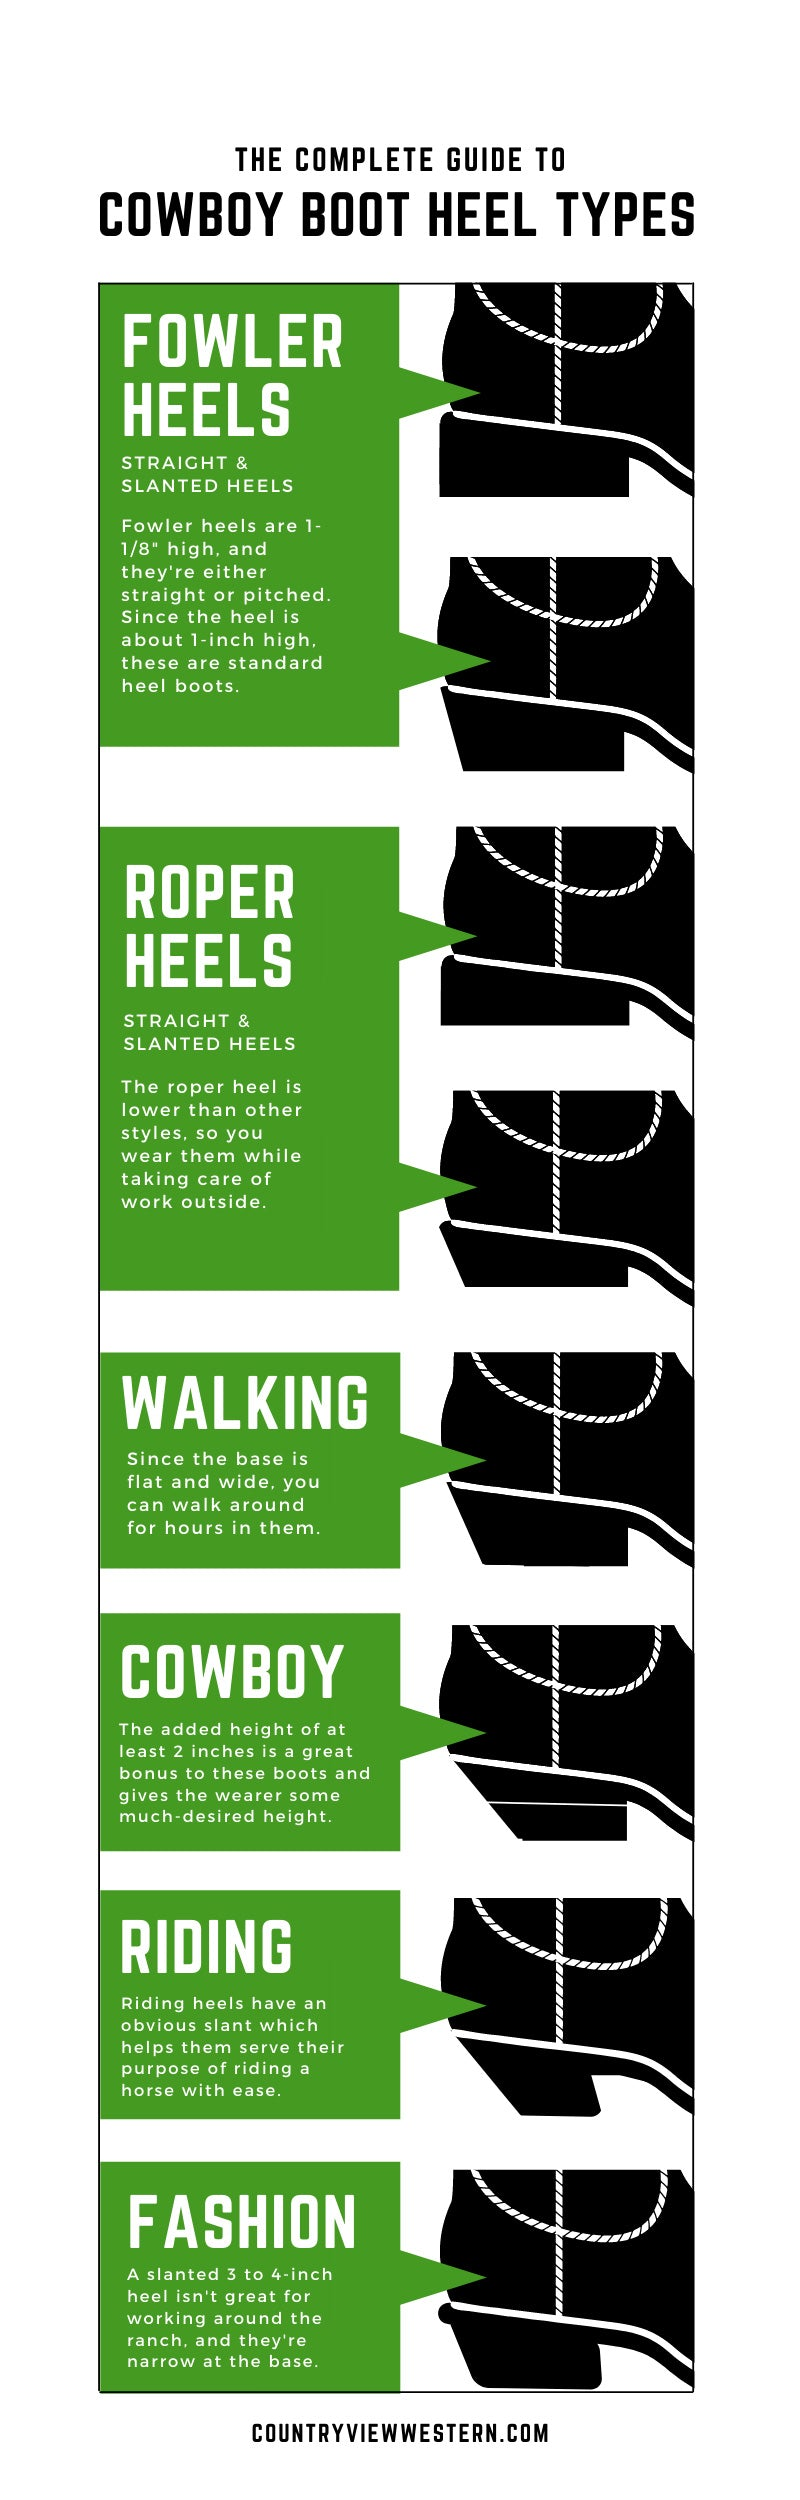 The Complete Guide To Cowboy Boot Heel Types